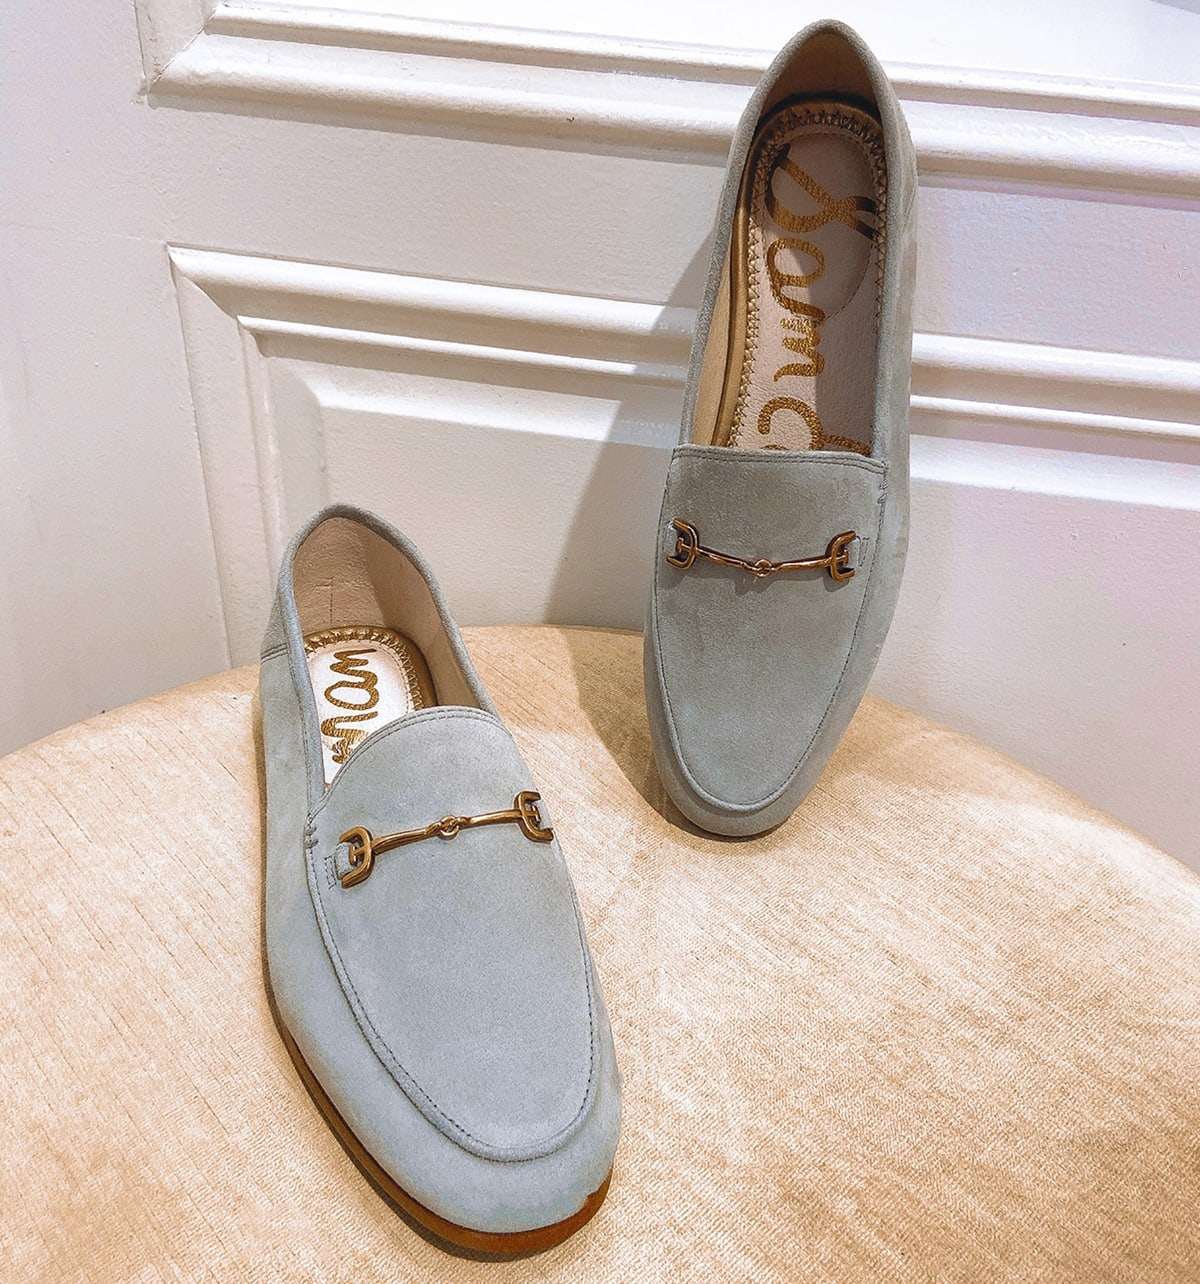 Sam Edelman's classic Loraine loafers feature bit hardware for a classic, menswear-inspired look that pairs well with jeans and pants